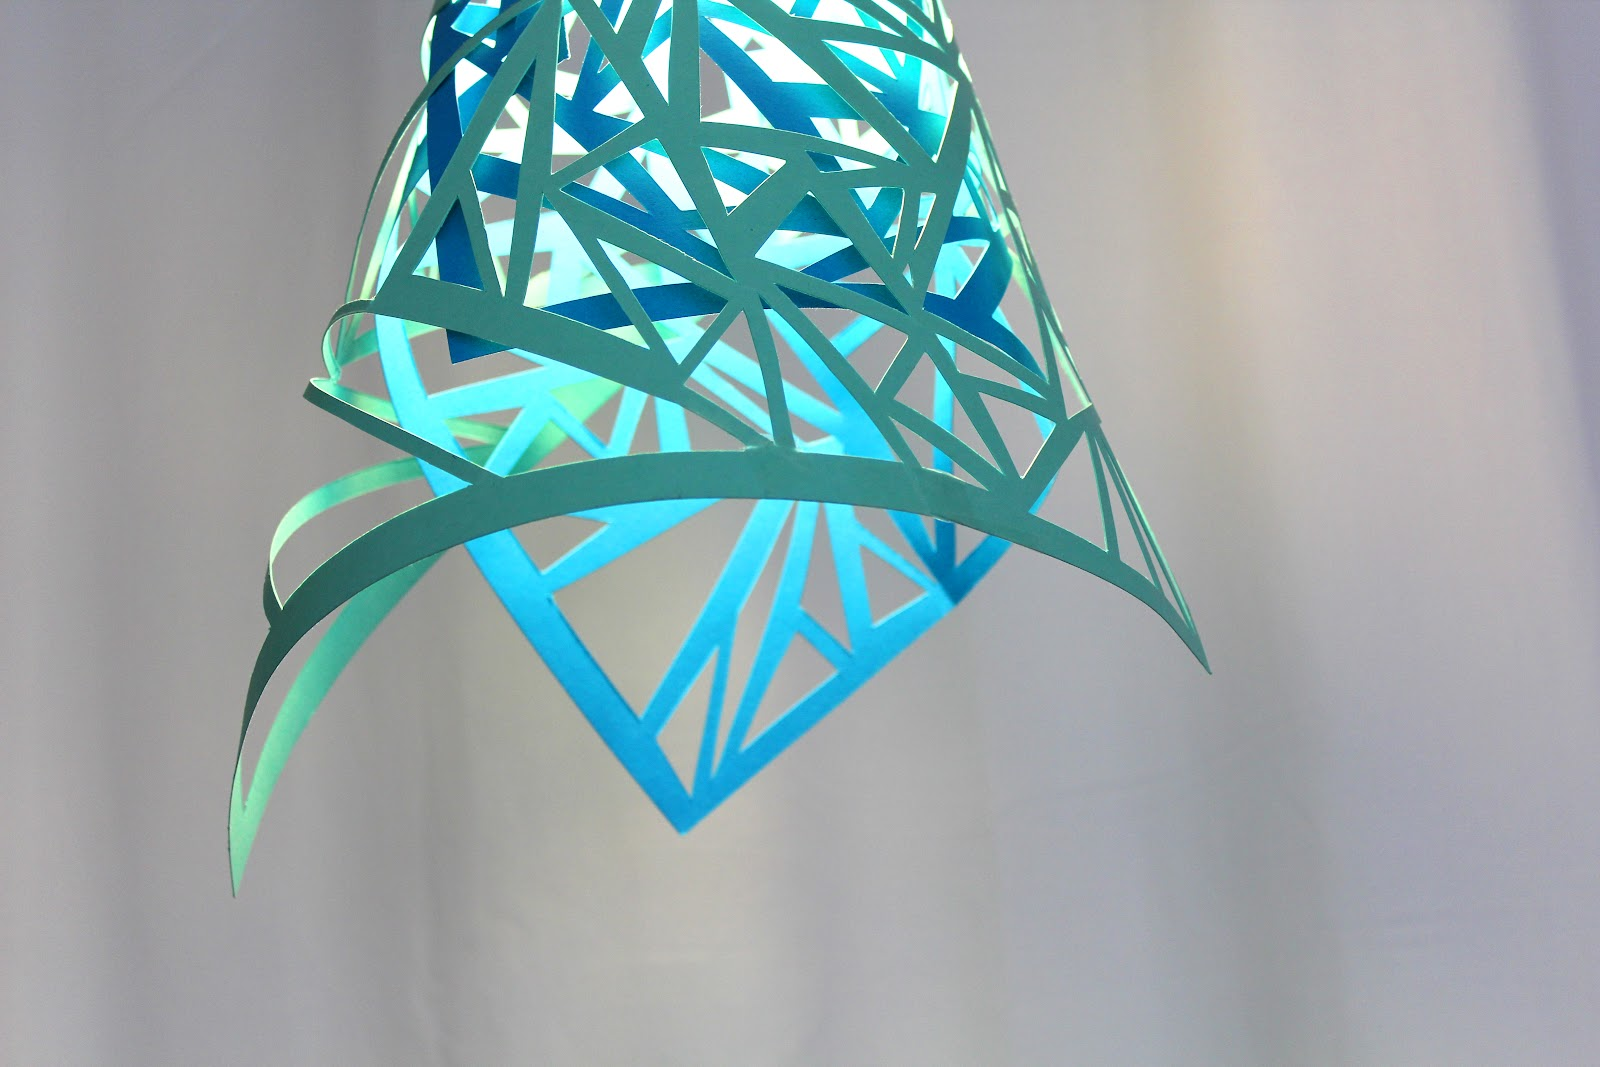 nest diy paper cut lamps in our home. Black Bedroom Furniture Sets. Home Design Ideas